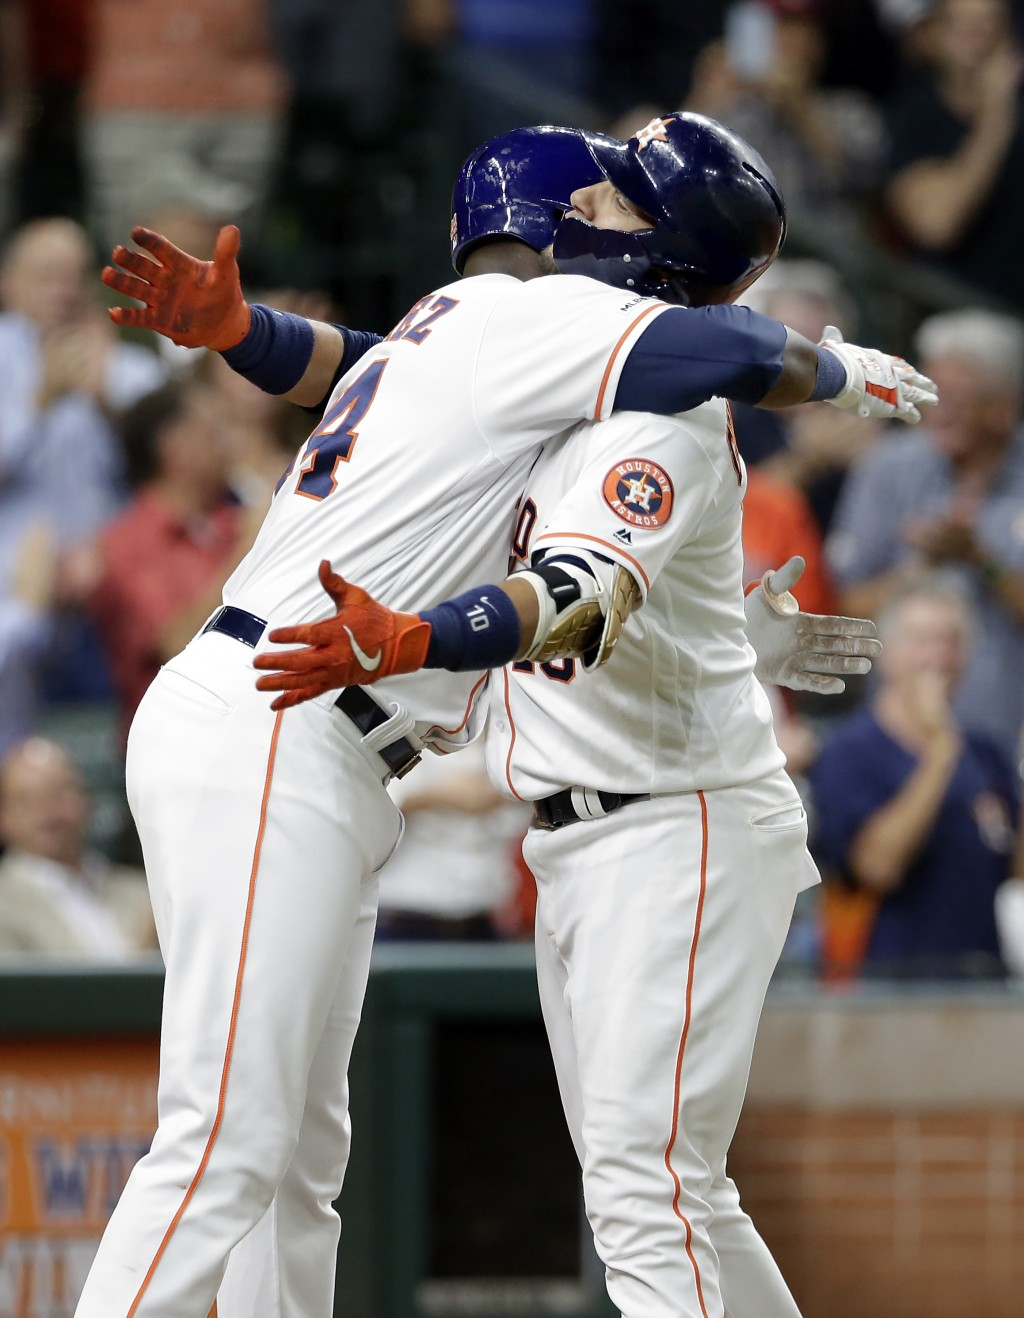 Houston Astros' Yordan Alvarez, left, and Yuli Gurriel, right, hug at home plate after they both scored on Gurriel's two-run home run during the fifth...